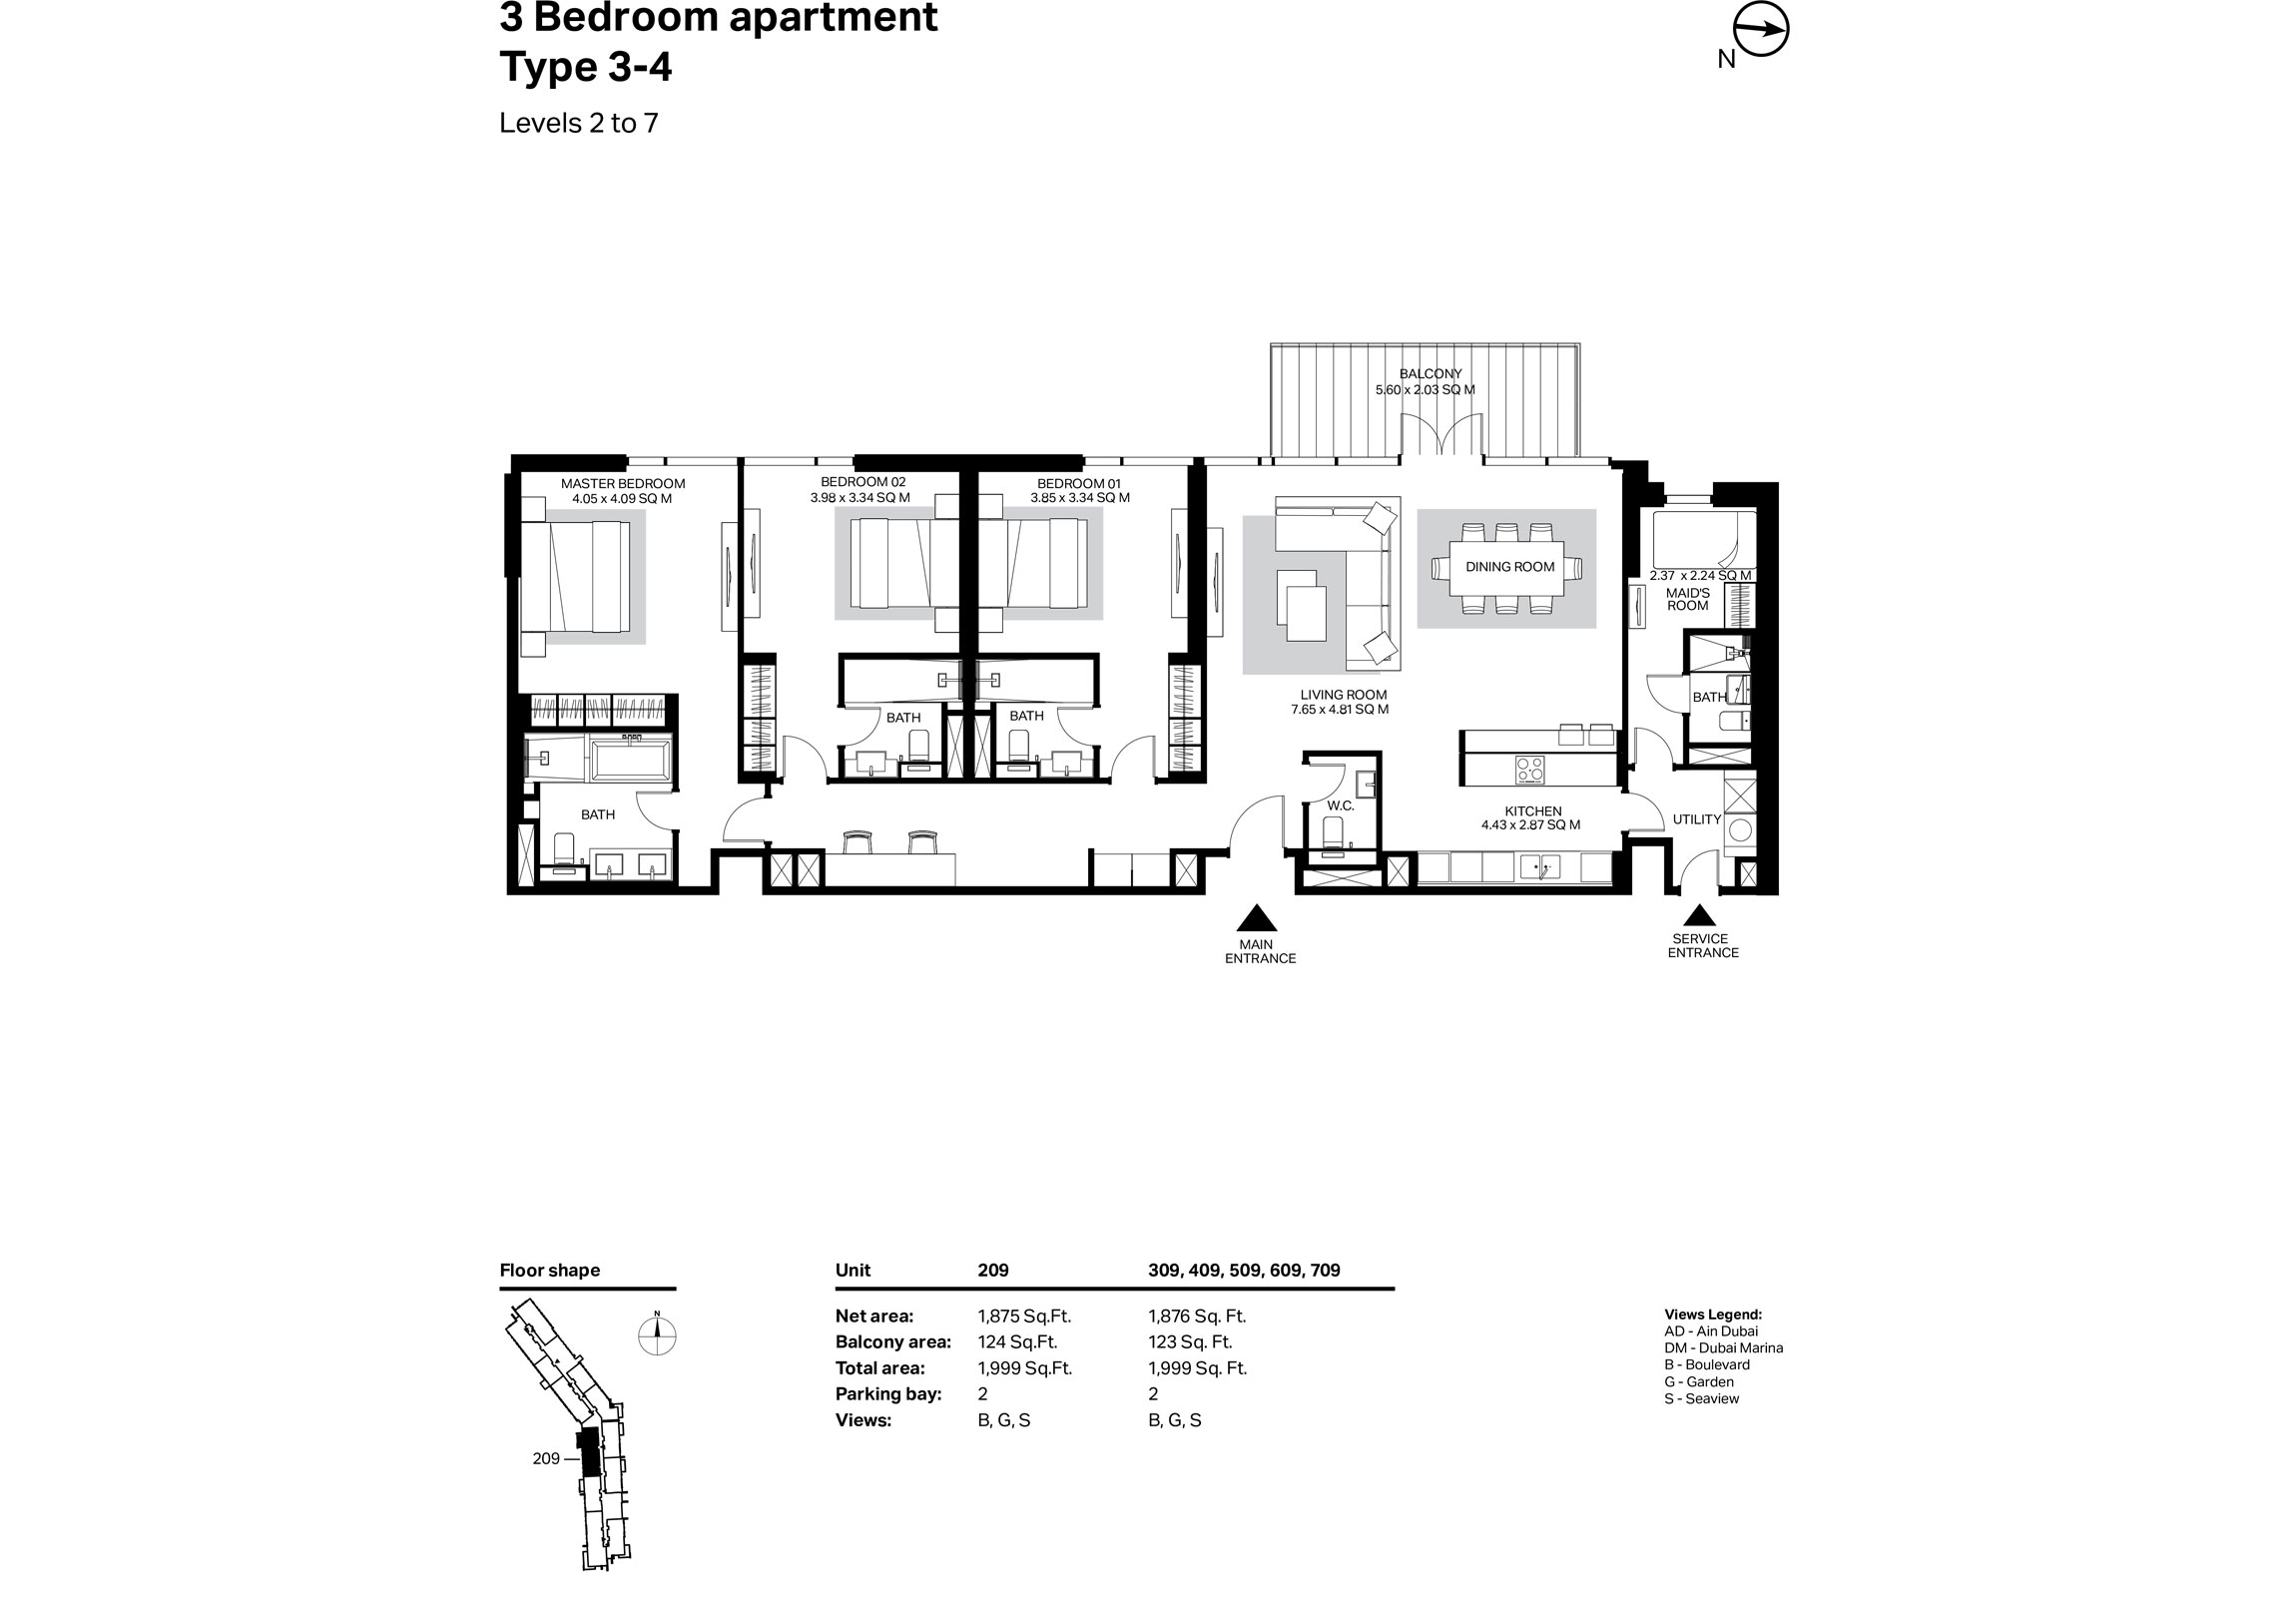 Building 2 - 3 Bedroom Type 3-4 Level 2 To 7 Size 1999    sq. ft.